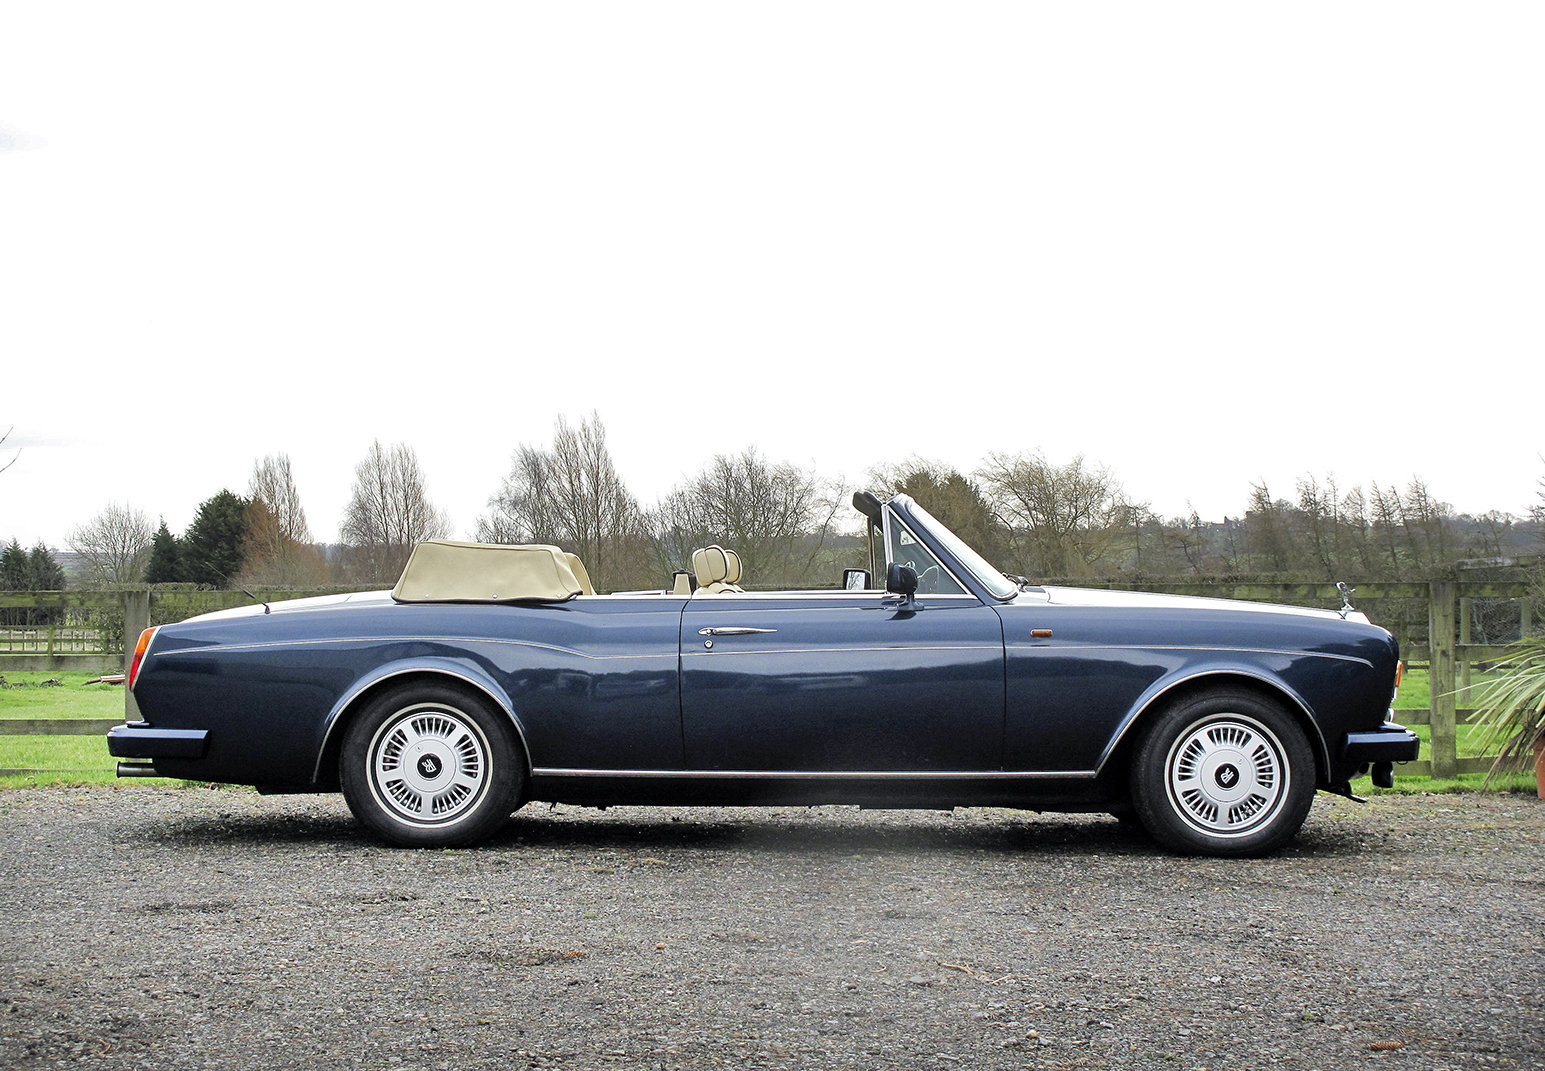 1989 Rolls-Royce Corniche II Convertible **SOLD** For Sale (picture 2 of 6)